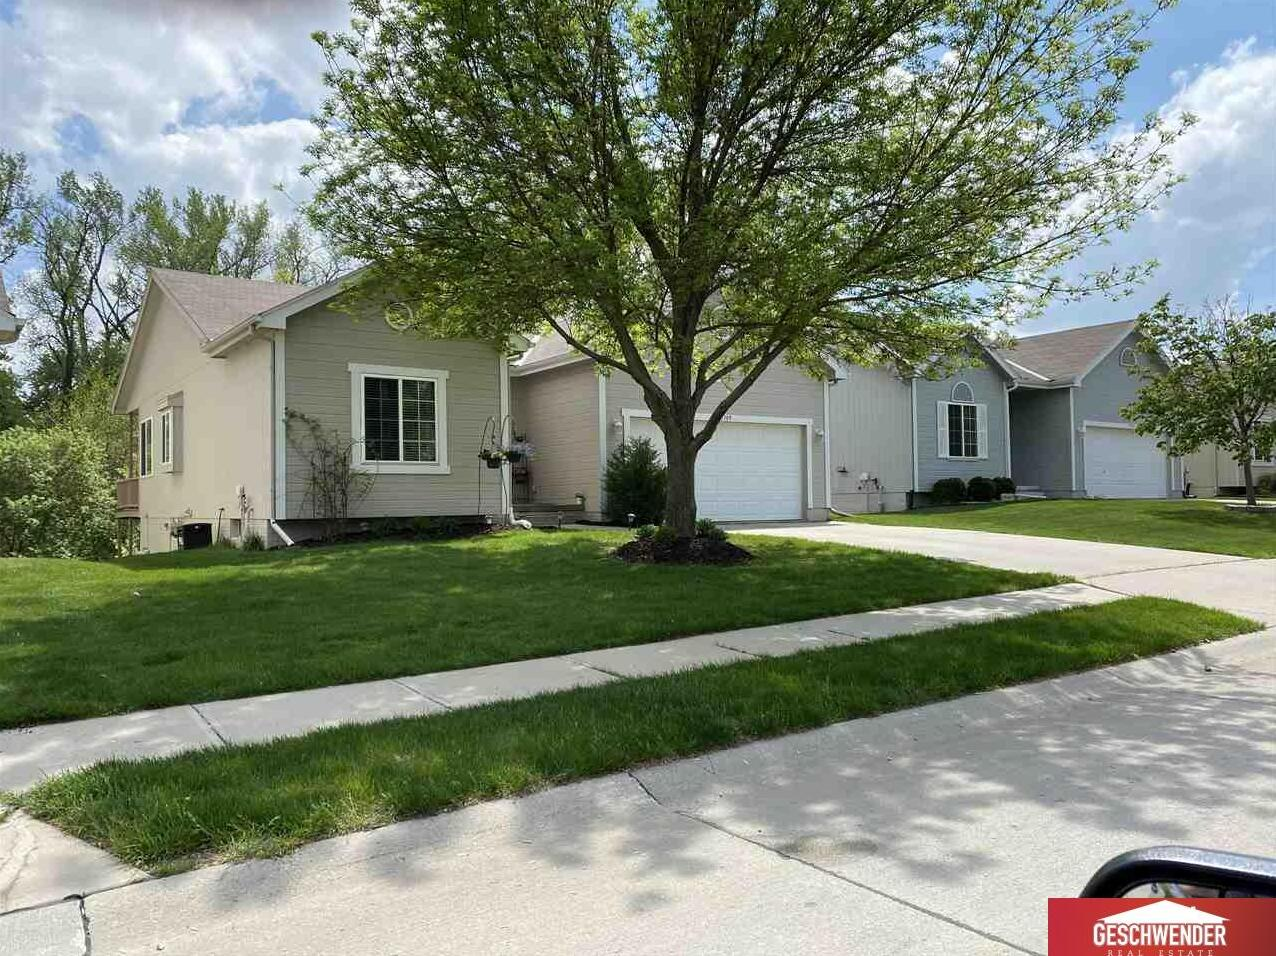 Photo of 15309 Saratoga Street Omaha NE 68116